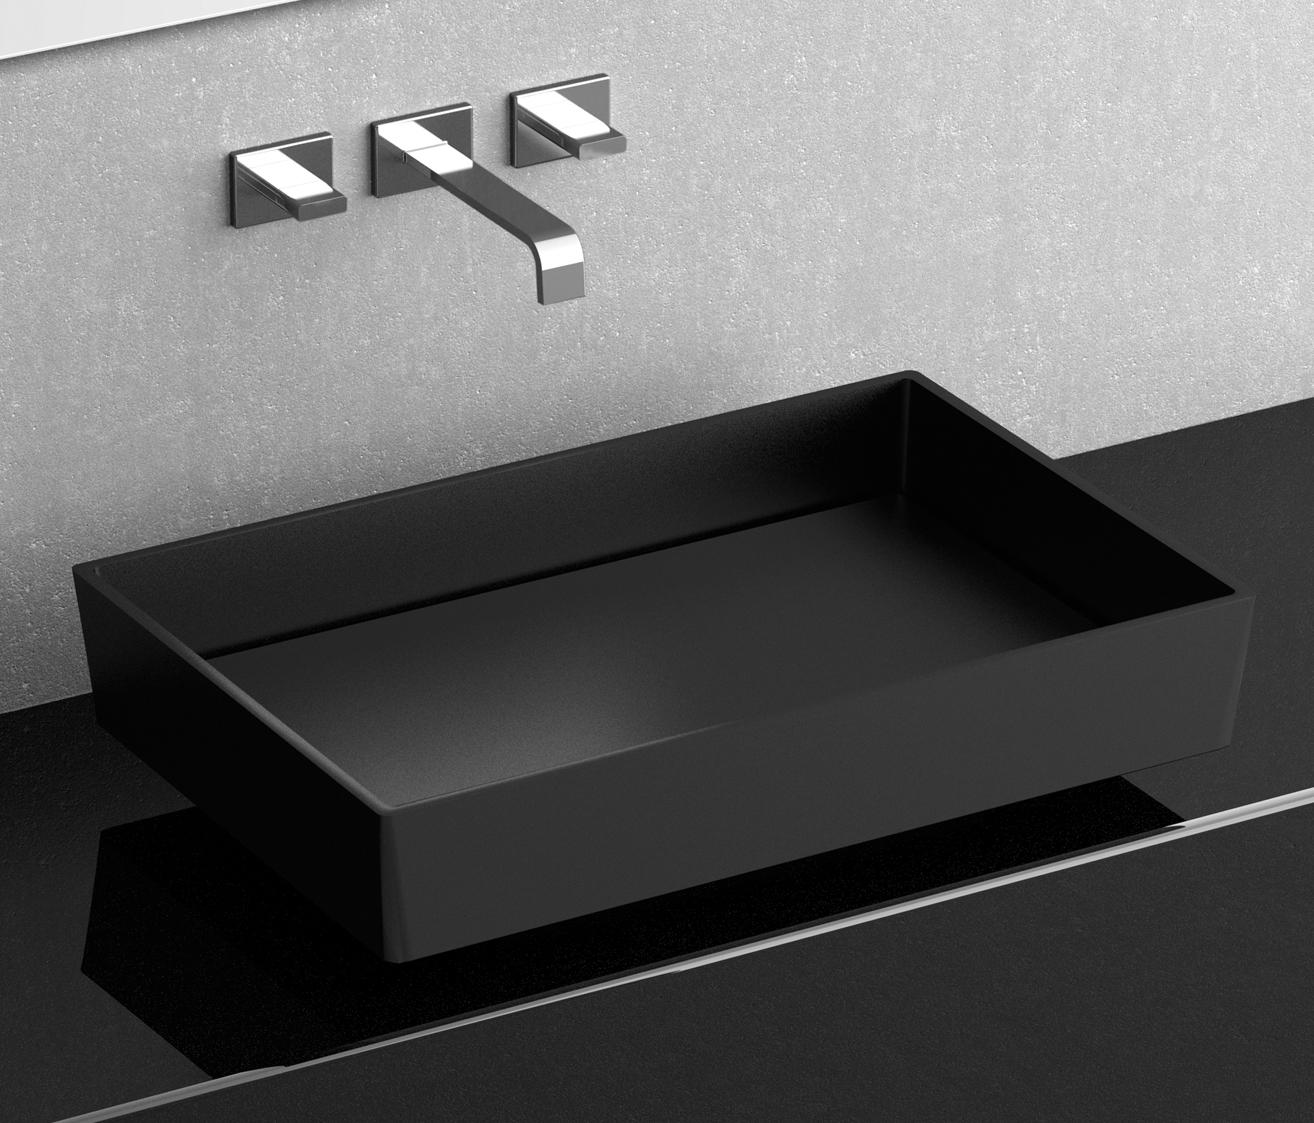 blade vision   wash basins from glass design architonic